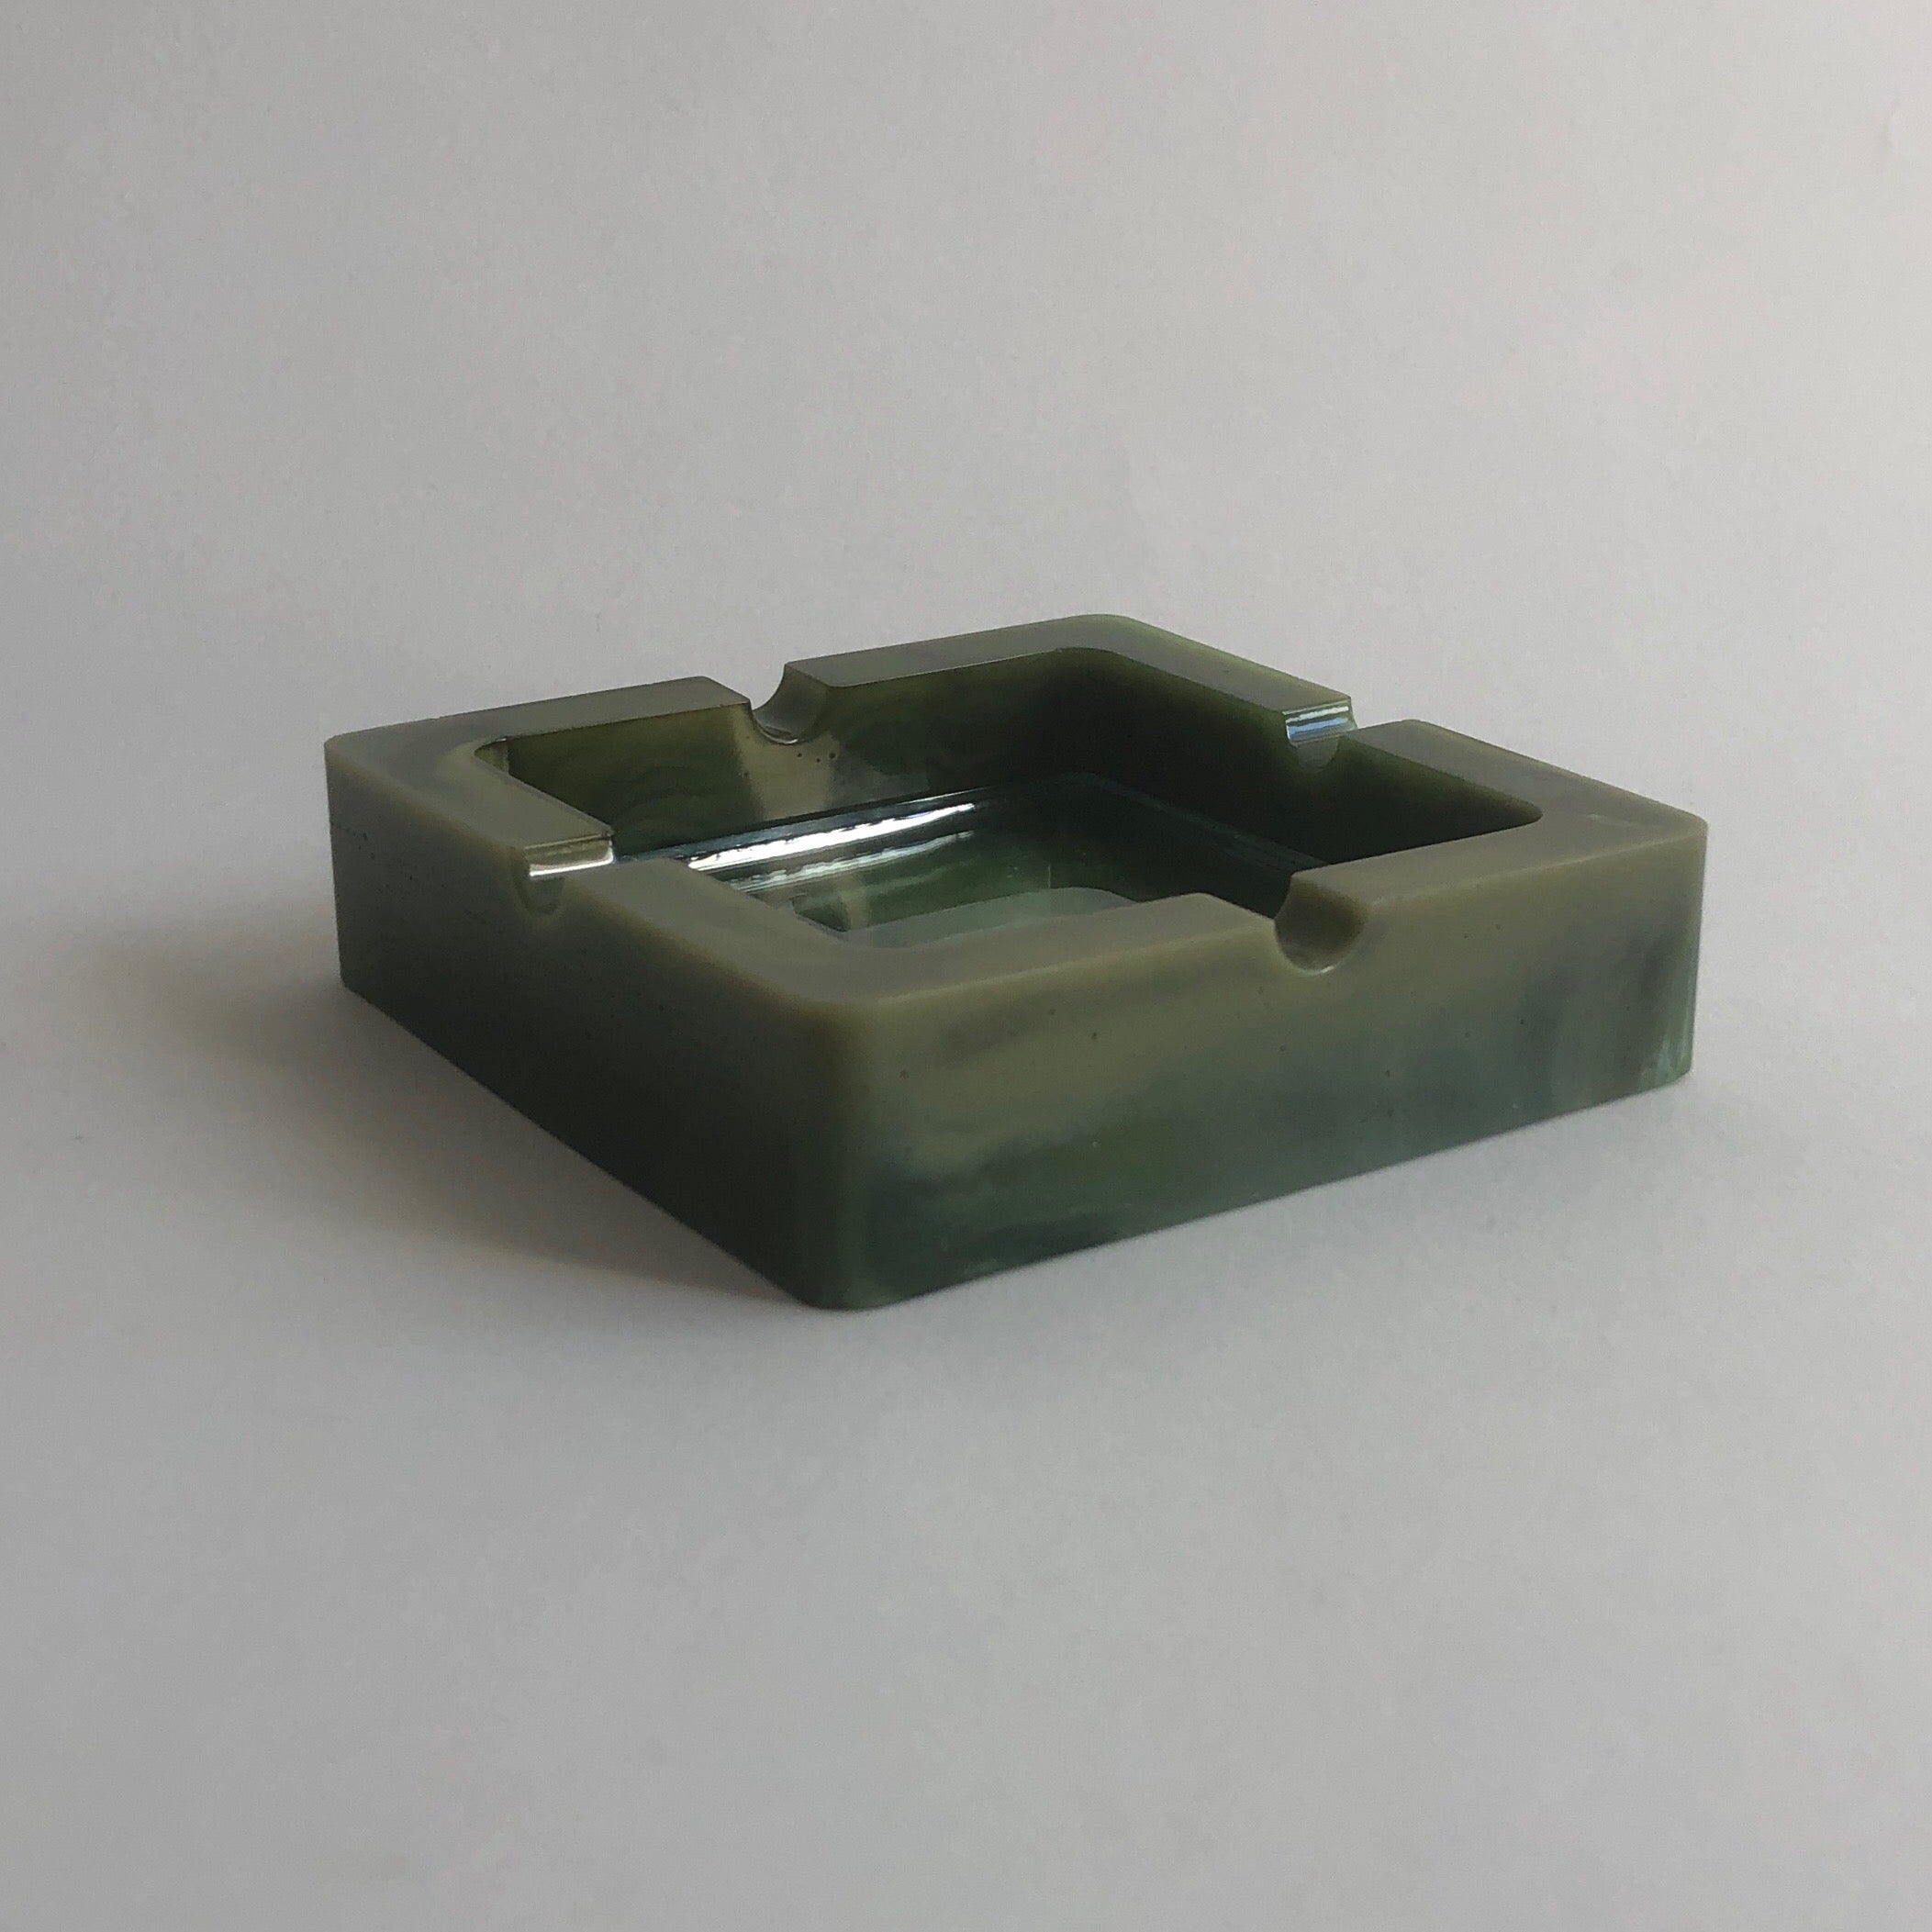 marbled green resin & glass ashtray